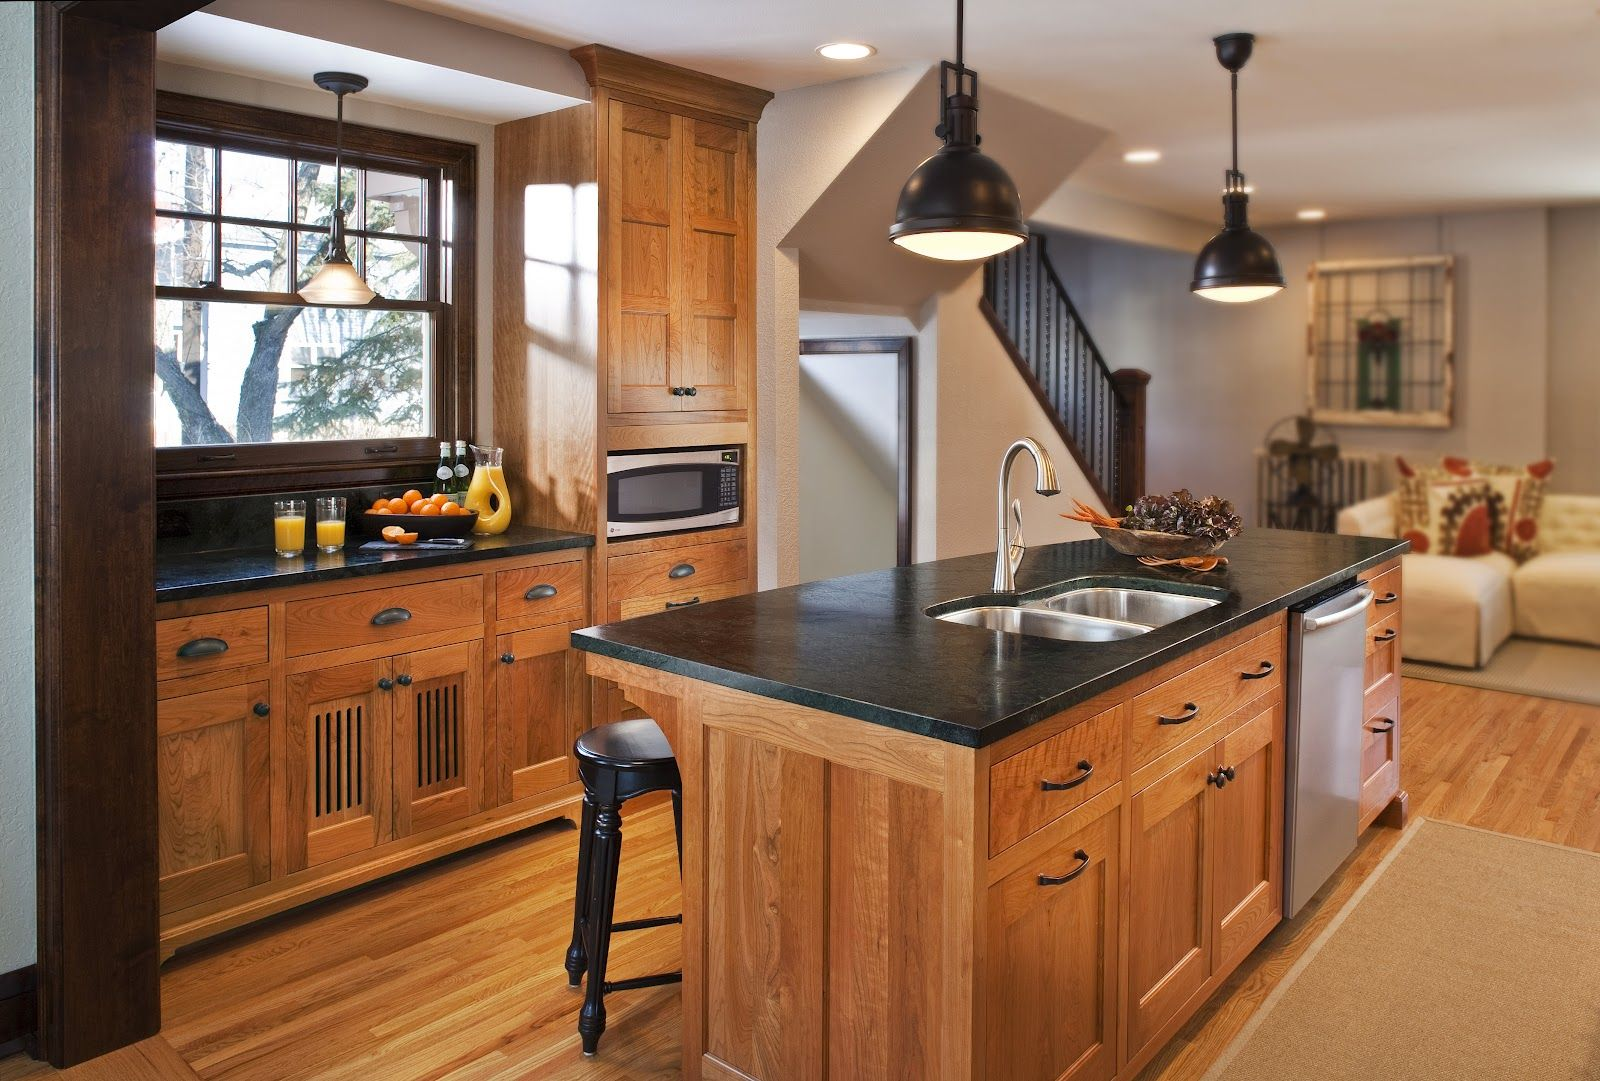 Natural Oak Cabinets With Soapstone Counter Tops Appropriate Material Choice Are The